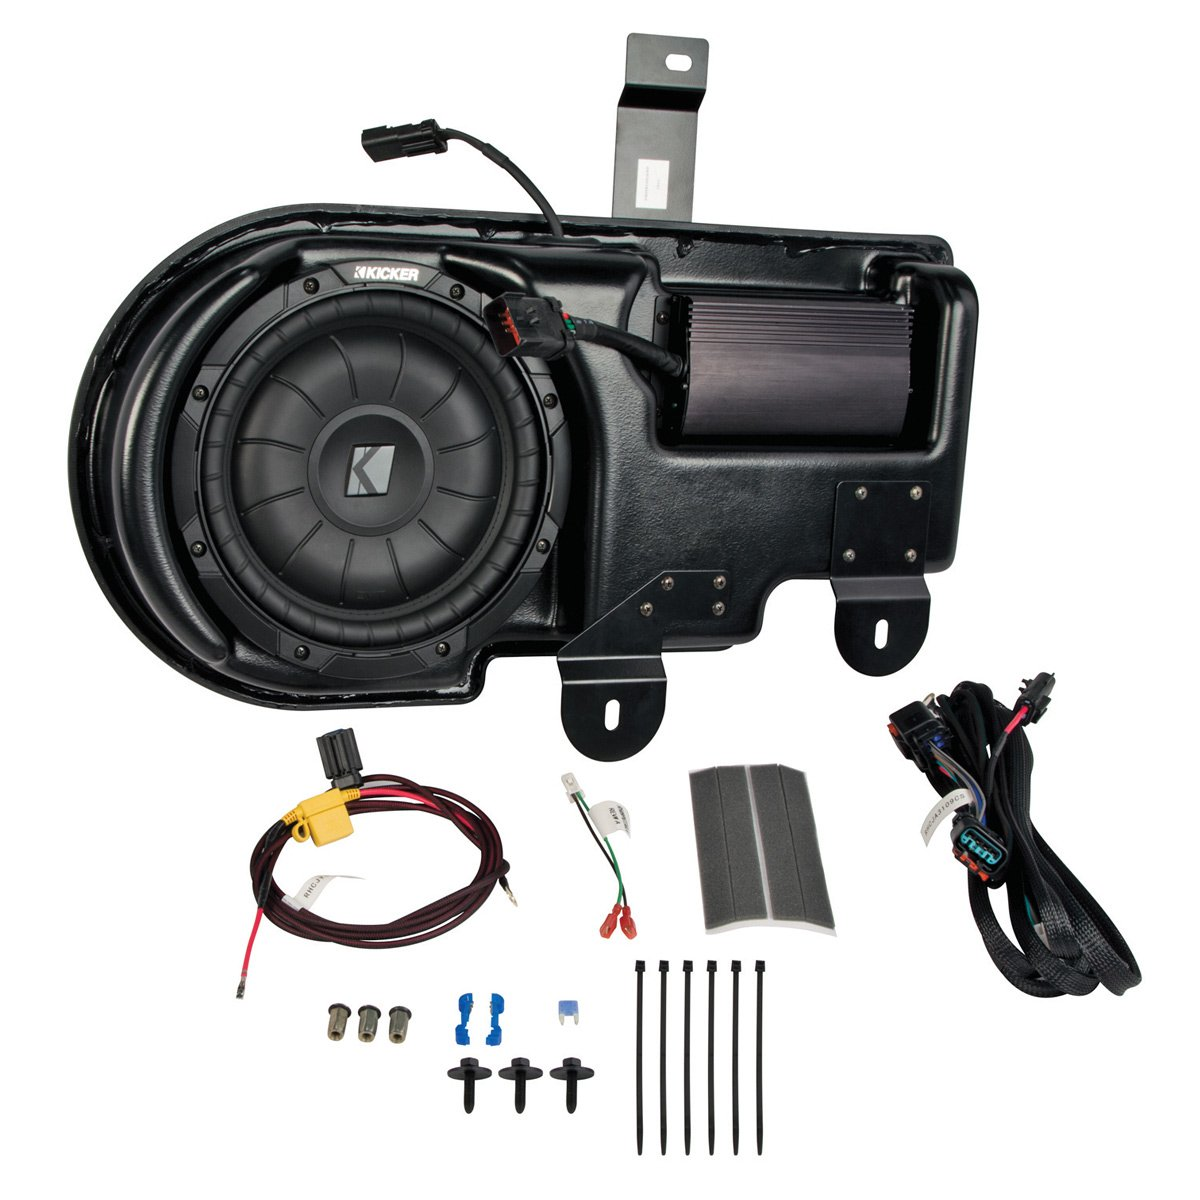 Kicker SF150C09 Powered Subwoofer Upgrade Kit For 2009-2014 Ford F-150 Super Crew